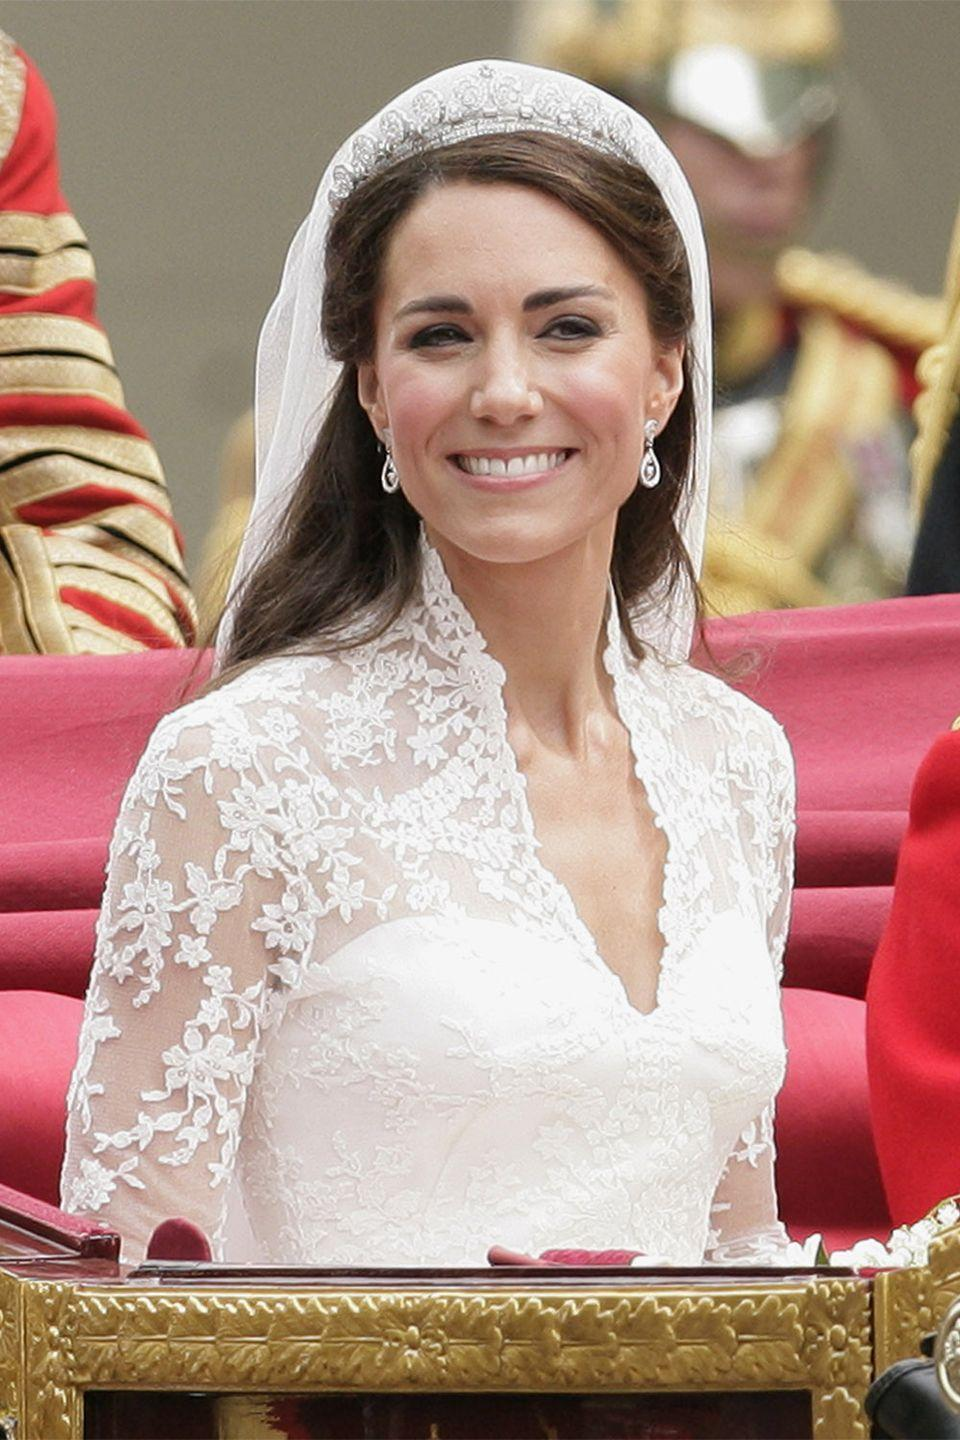 <p>The Duchess of Cambridge chose a half-up style for her wedding in 2011.</p>